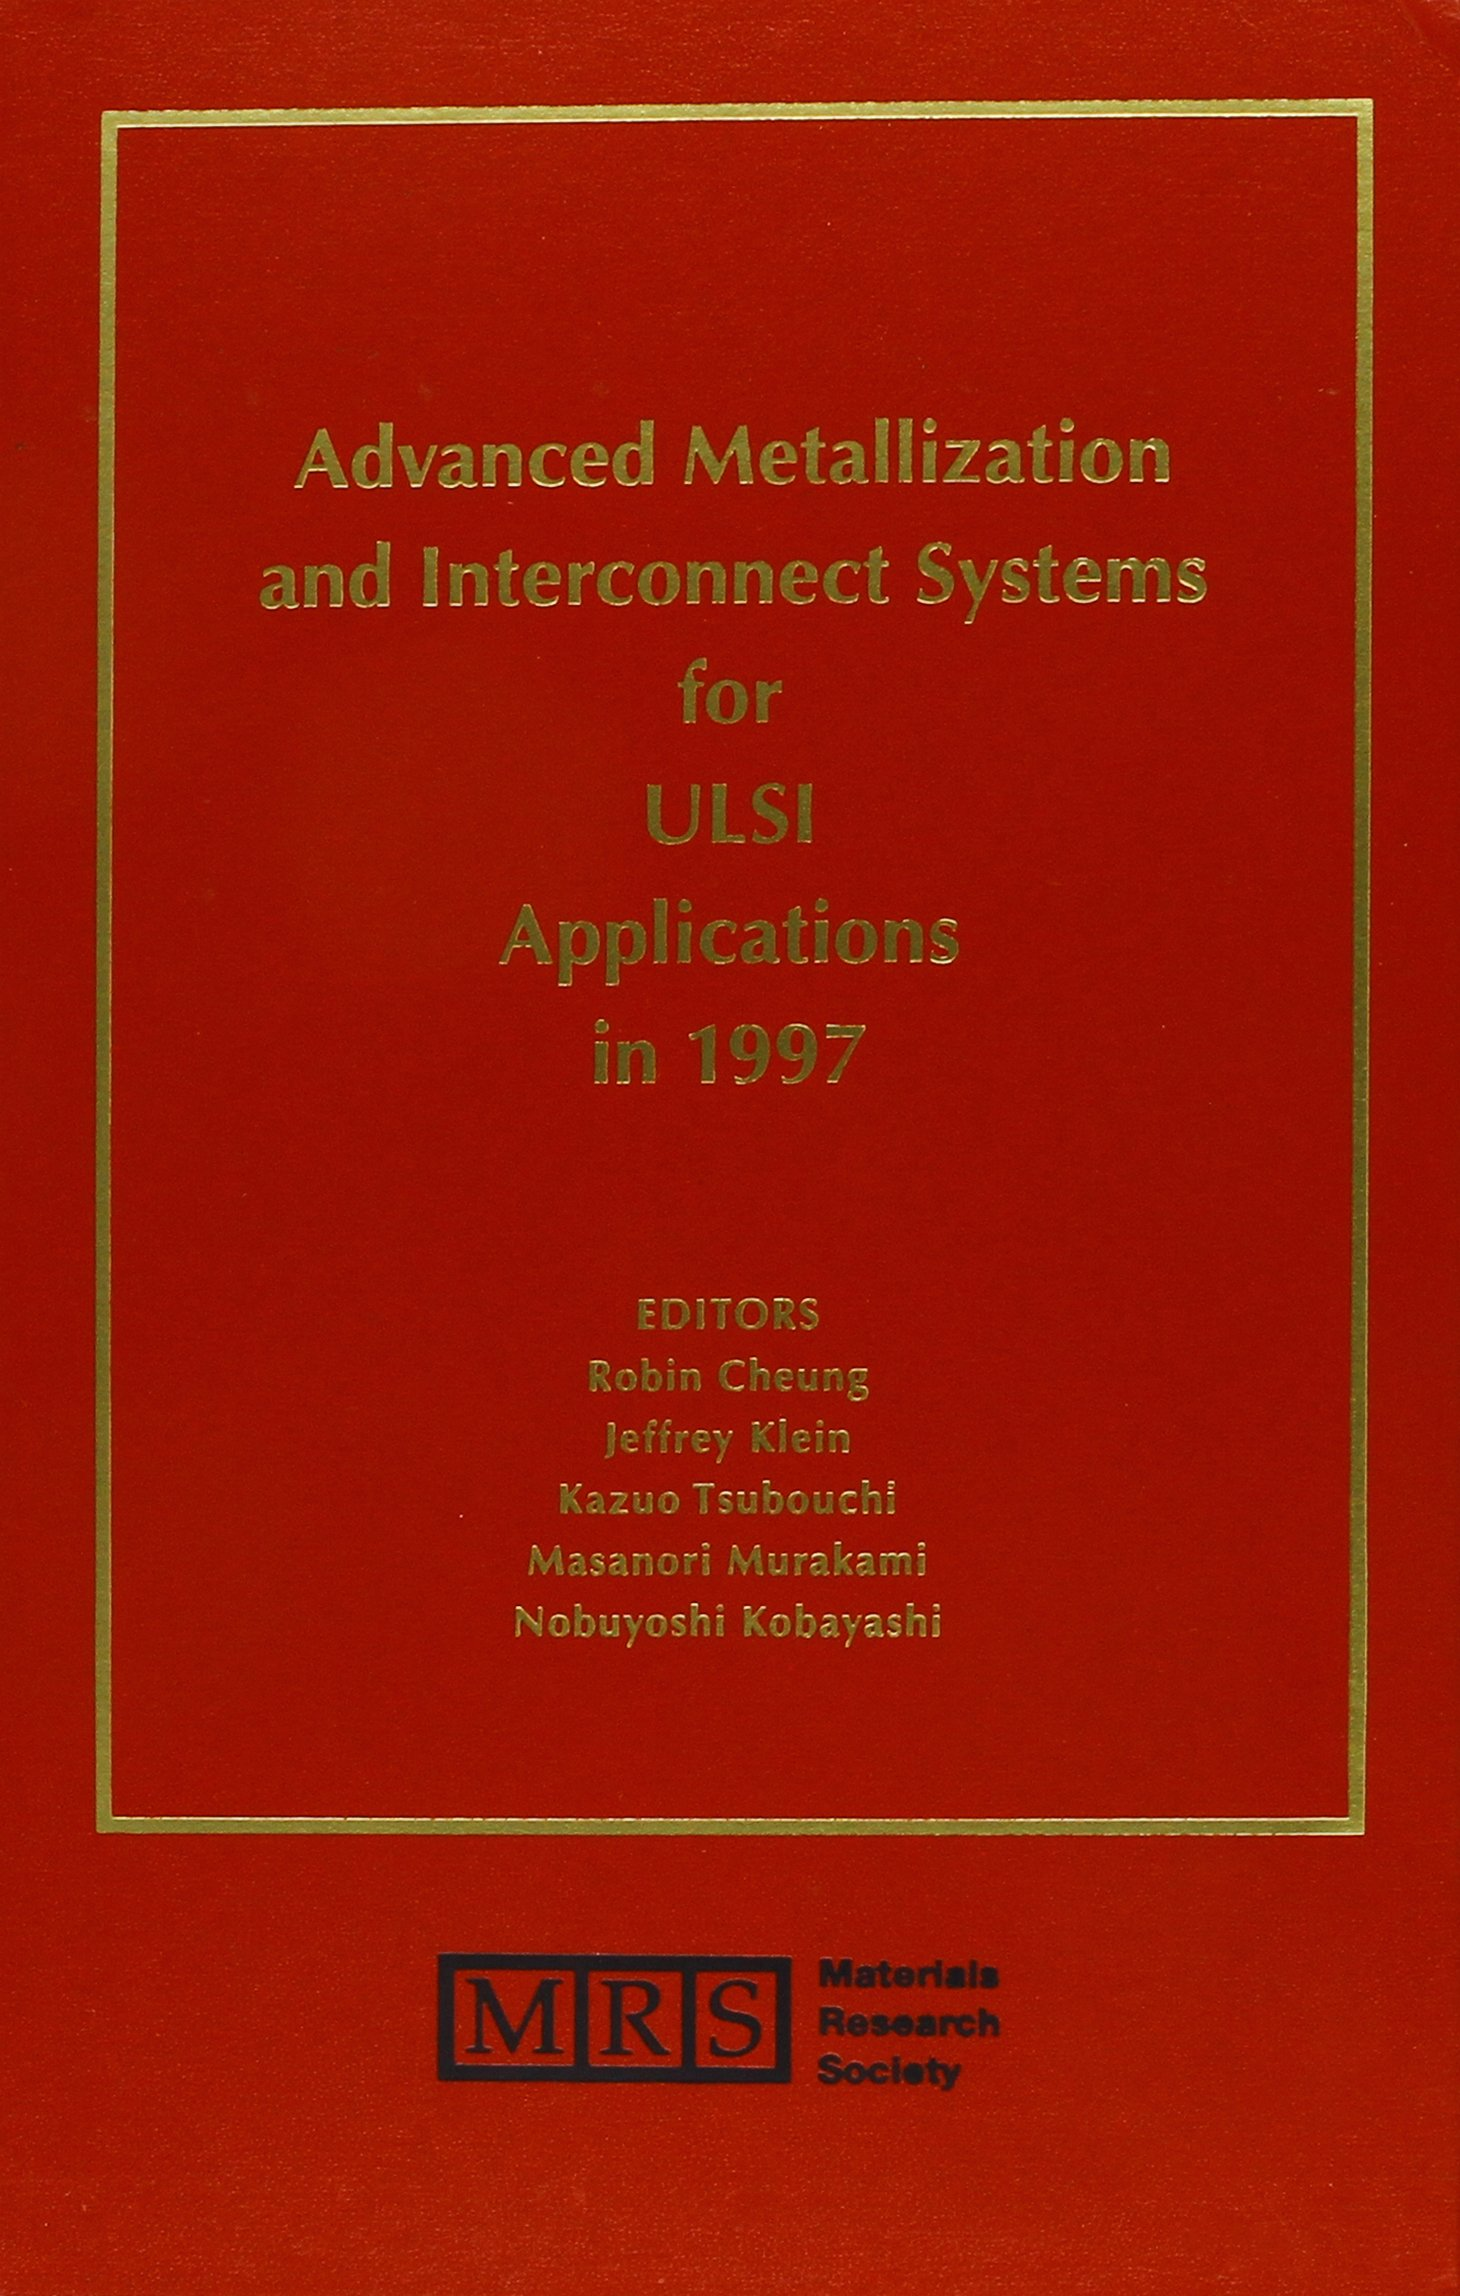 Advanced Metallization and Interconnect Systems for ULSI Applications in 1997: Volume 13 (MRS Conference Proceedings) Text fb2 ebook